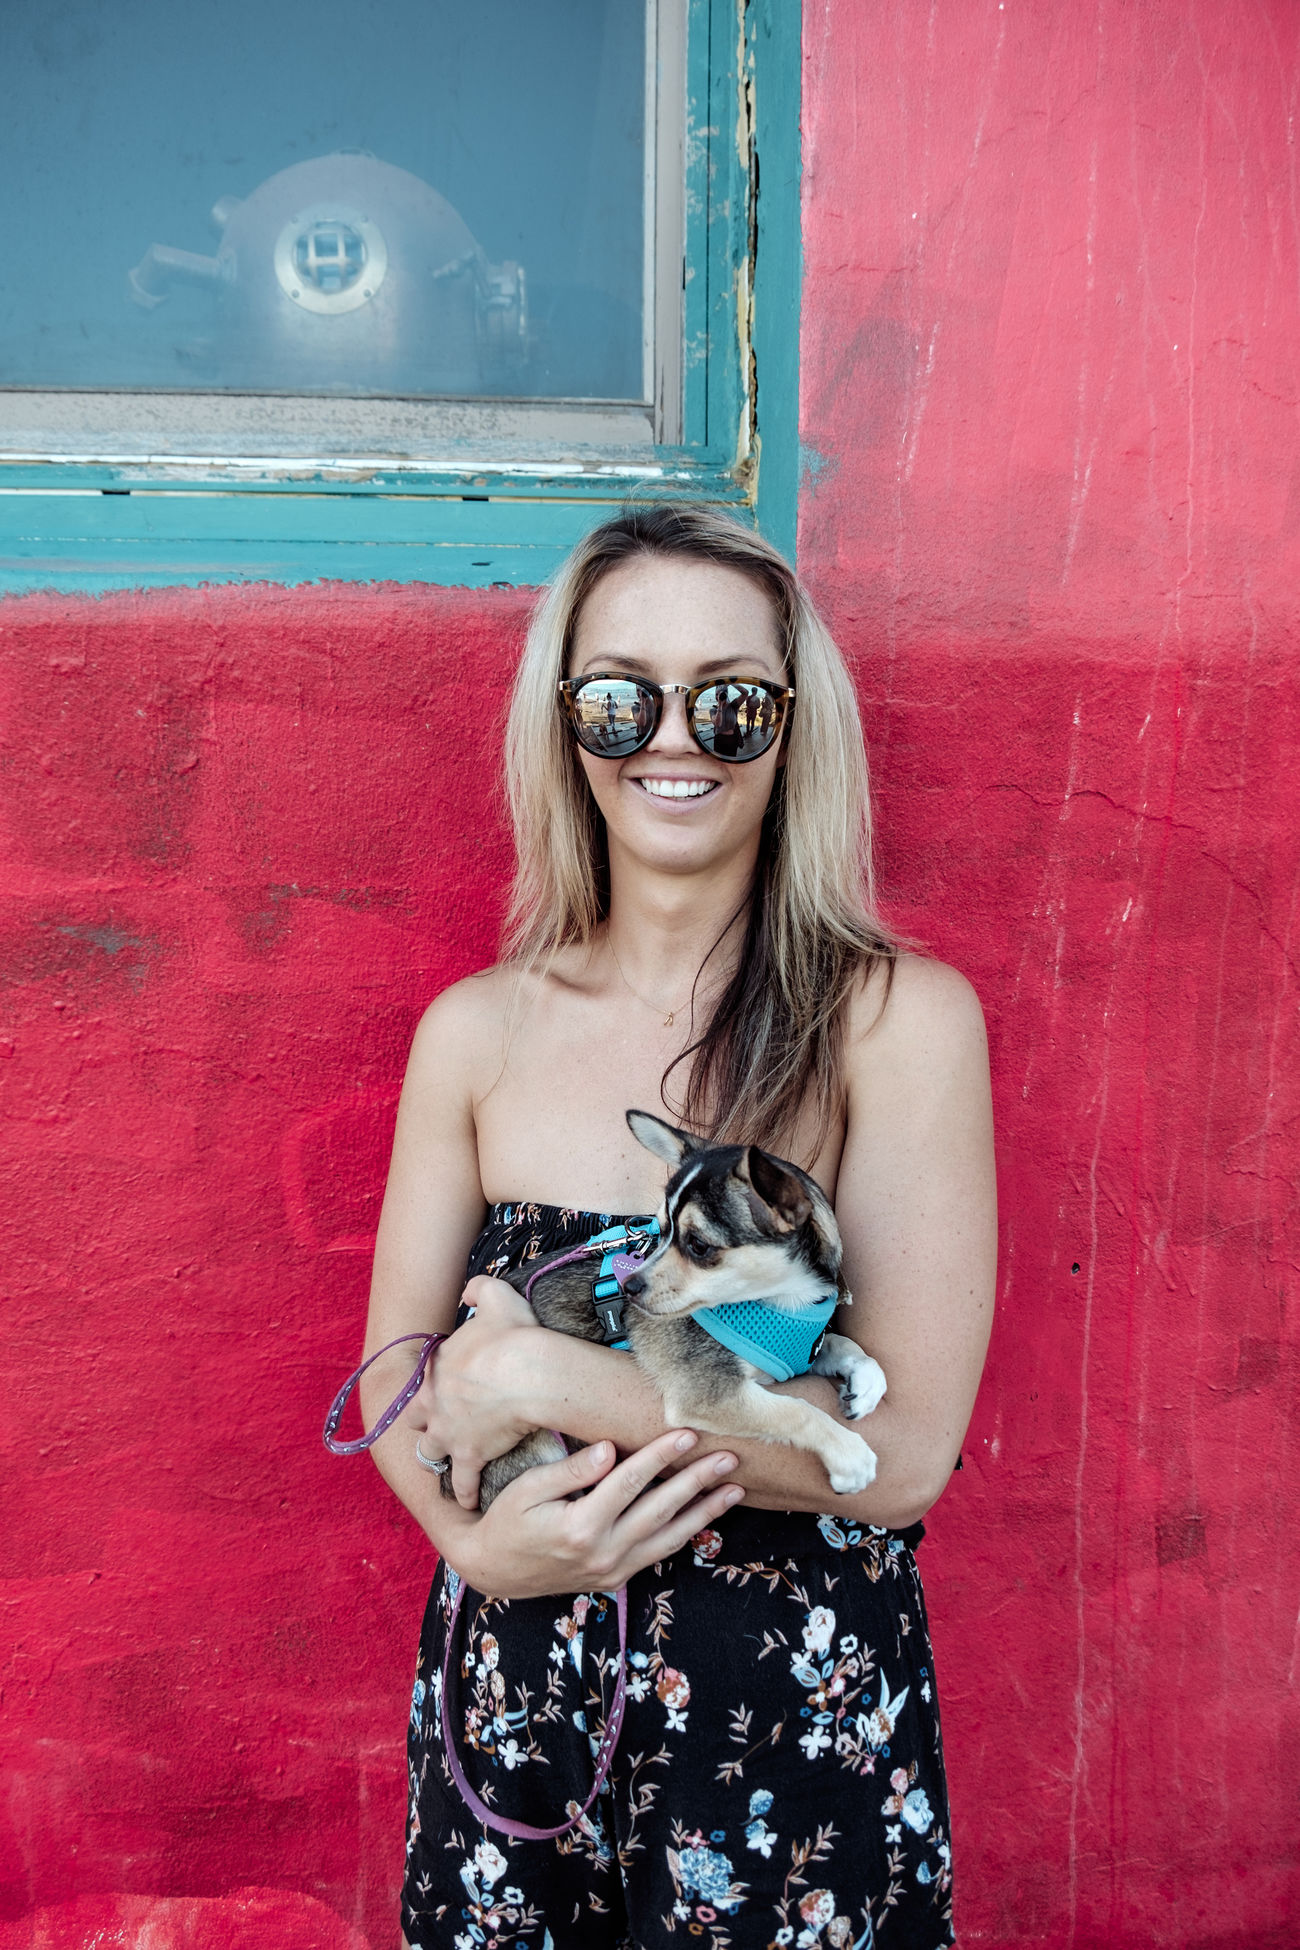 Adult Adults Only Beautiful Woman Day Dog Flavored Ice Fun Happiness Leisure Activity Long Hair One Person One Woman Only One Young Woman Only Only Women Outdoors People Pink Color Portrait Puppy Real People Smiling Sunglasses Turquoise Young Adult Young Women